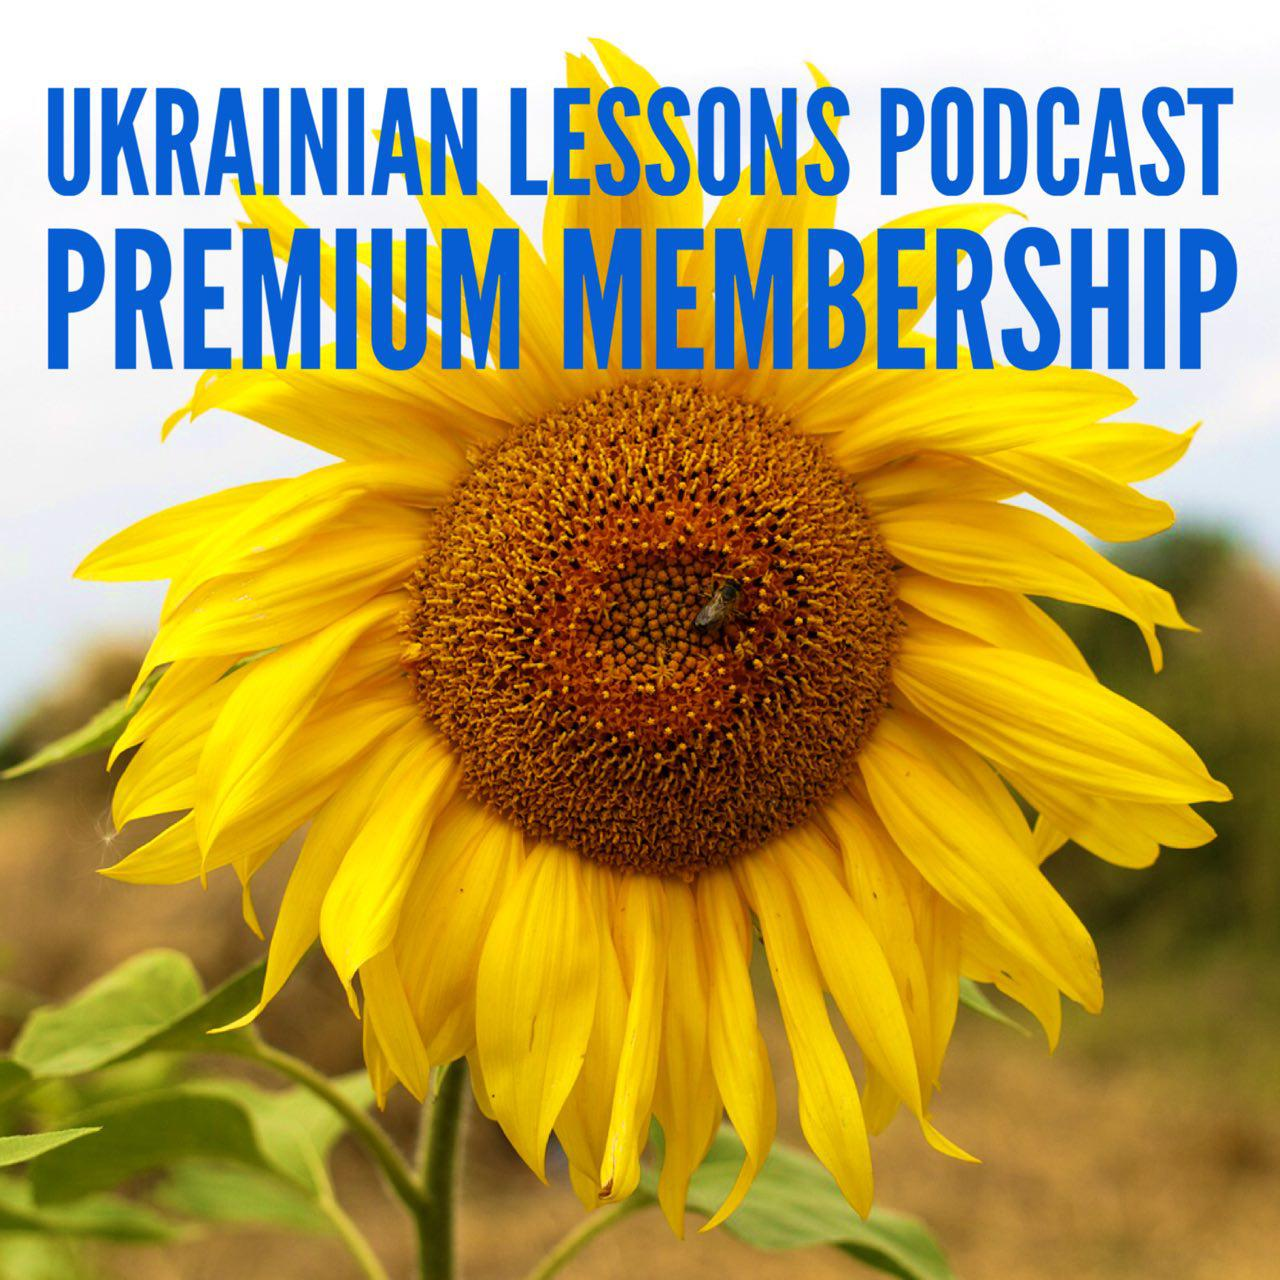 Ukrainian Lessons Podcast Premium Membership